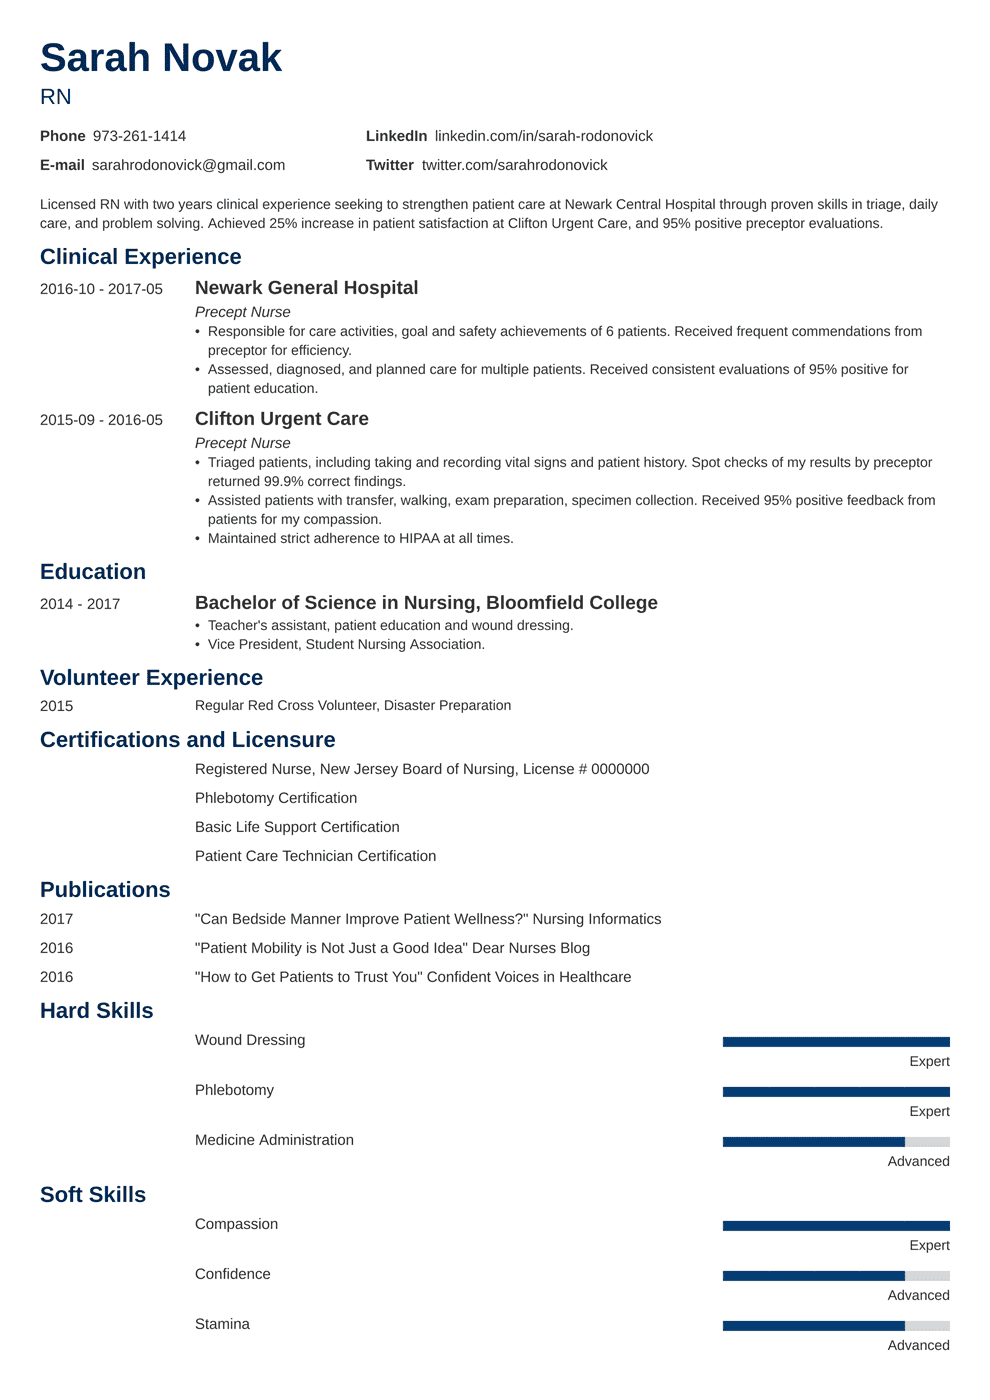 Nursing Student Resume Sample & Guide for New RN Grads [+Skills]